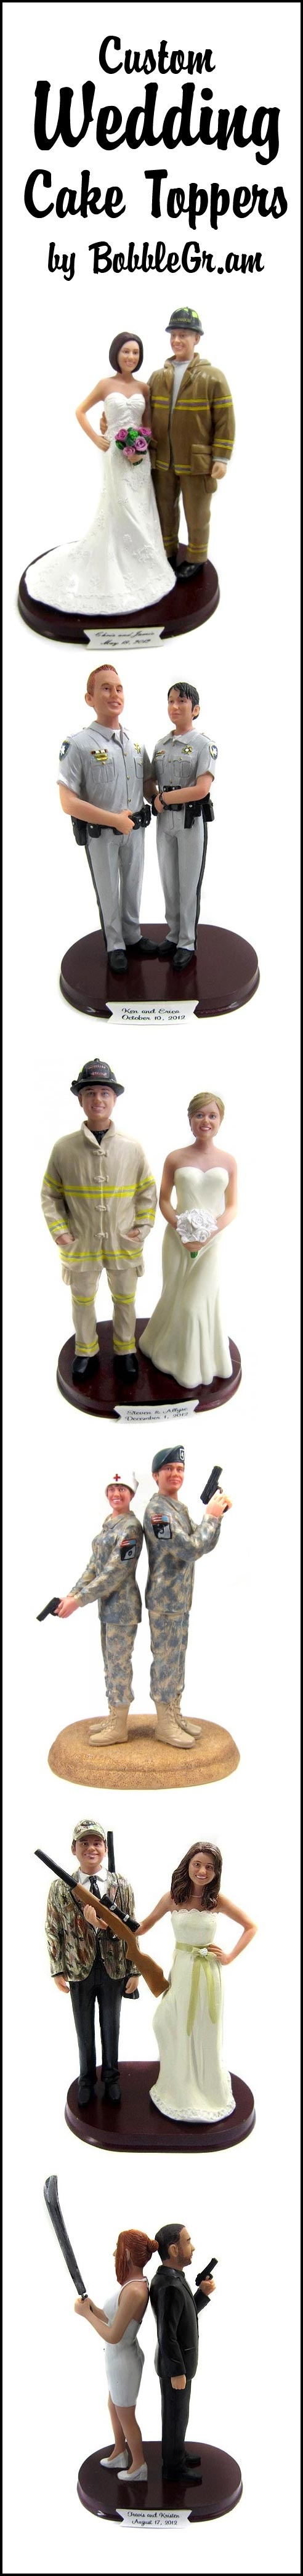 Custom cake toppers are sculpted to look like you! #fireflighters #police #military